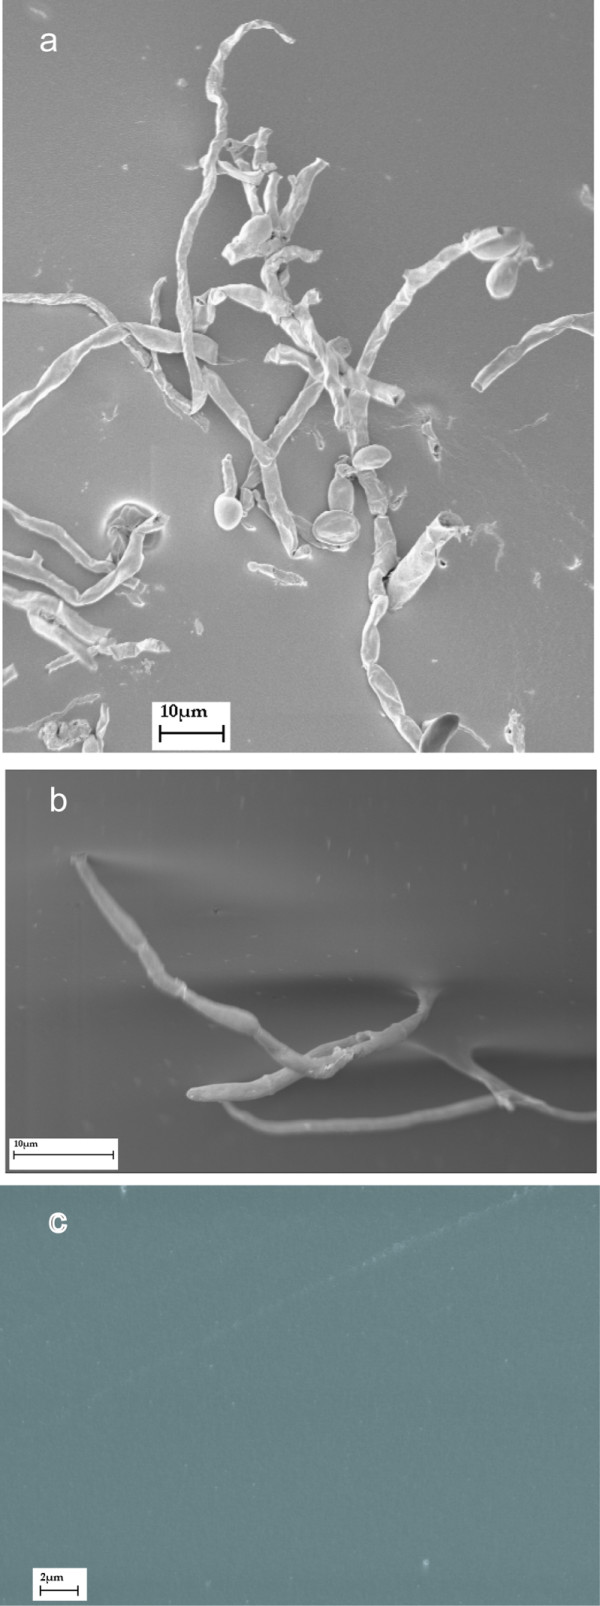 Scanning electron micrographs of biofilm formation . (a) F. solani (238-06) incubated with fresh ACUVUE lens and balanced salt solution for 48 h at 25°C on a rotator (180 rpm). (b) Close-up of the same isolate showing hyphal attachment to the lens surface (c) Disappearance of biofilm when preparation from (a) was treated with MoistureLoc for 4 h.